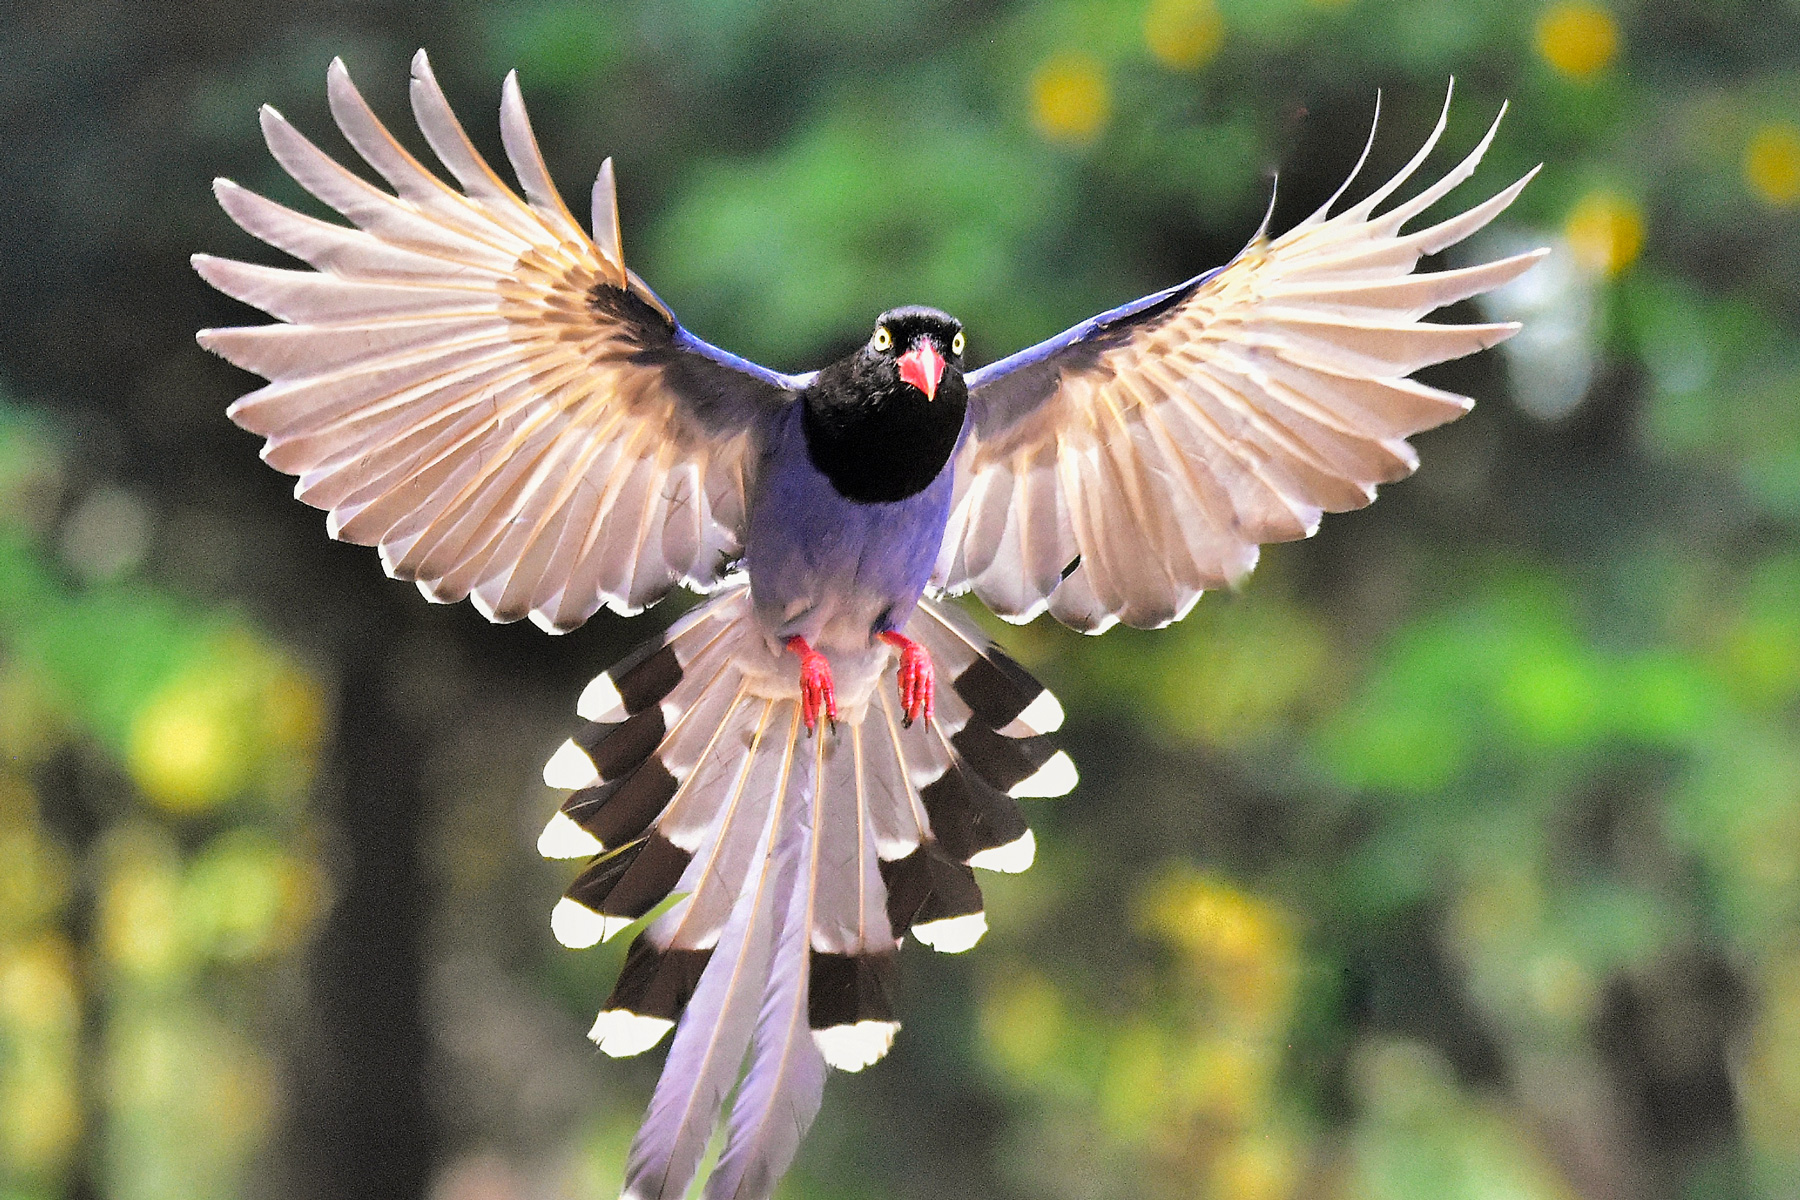 How Birds Fly New Usc Study Examines The Evolution Of Flight Feathers